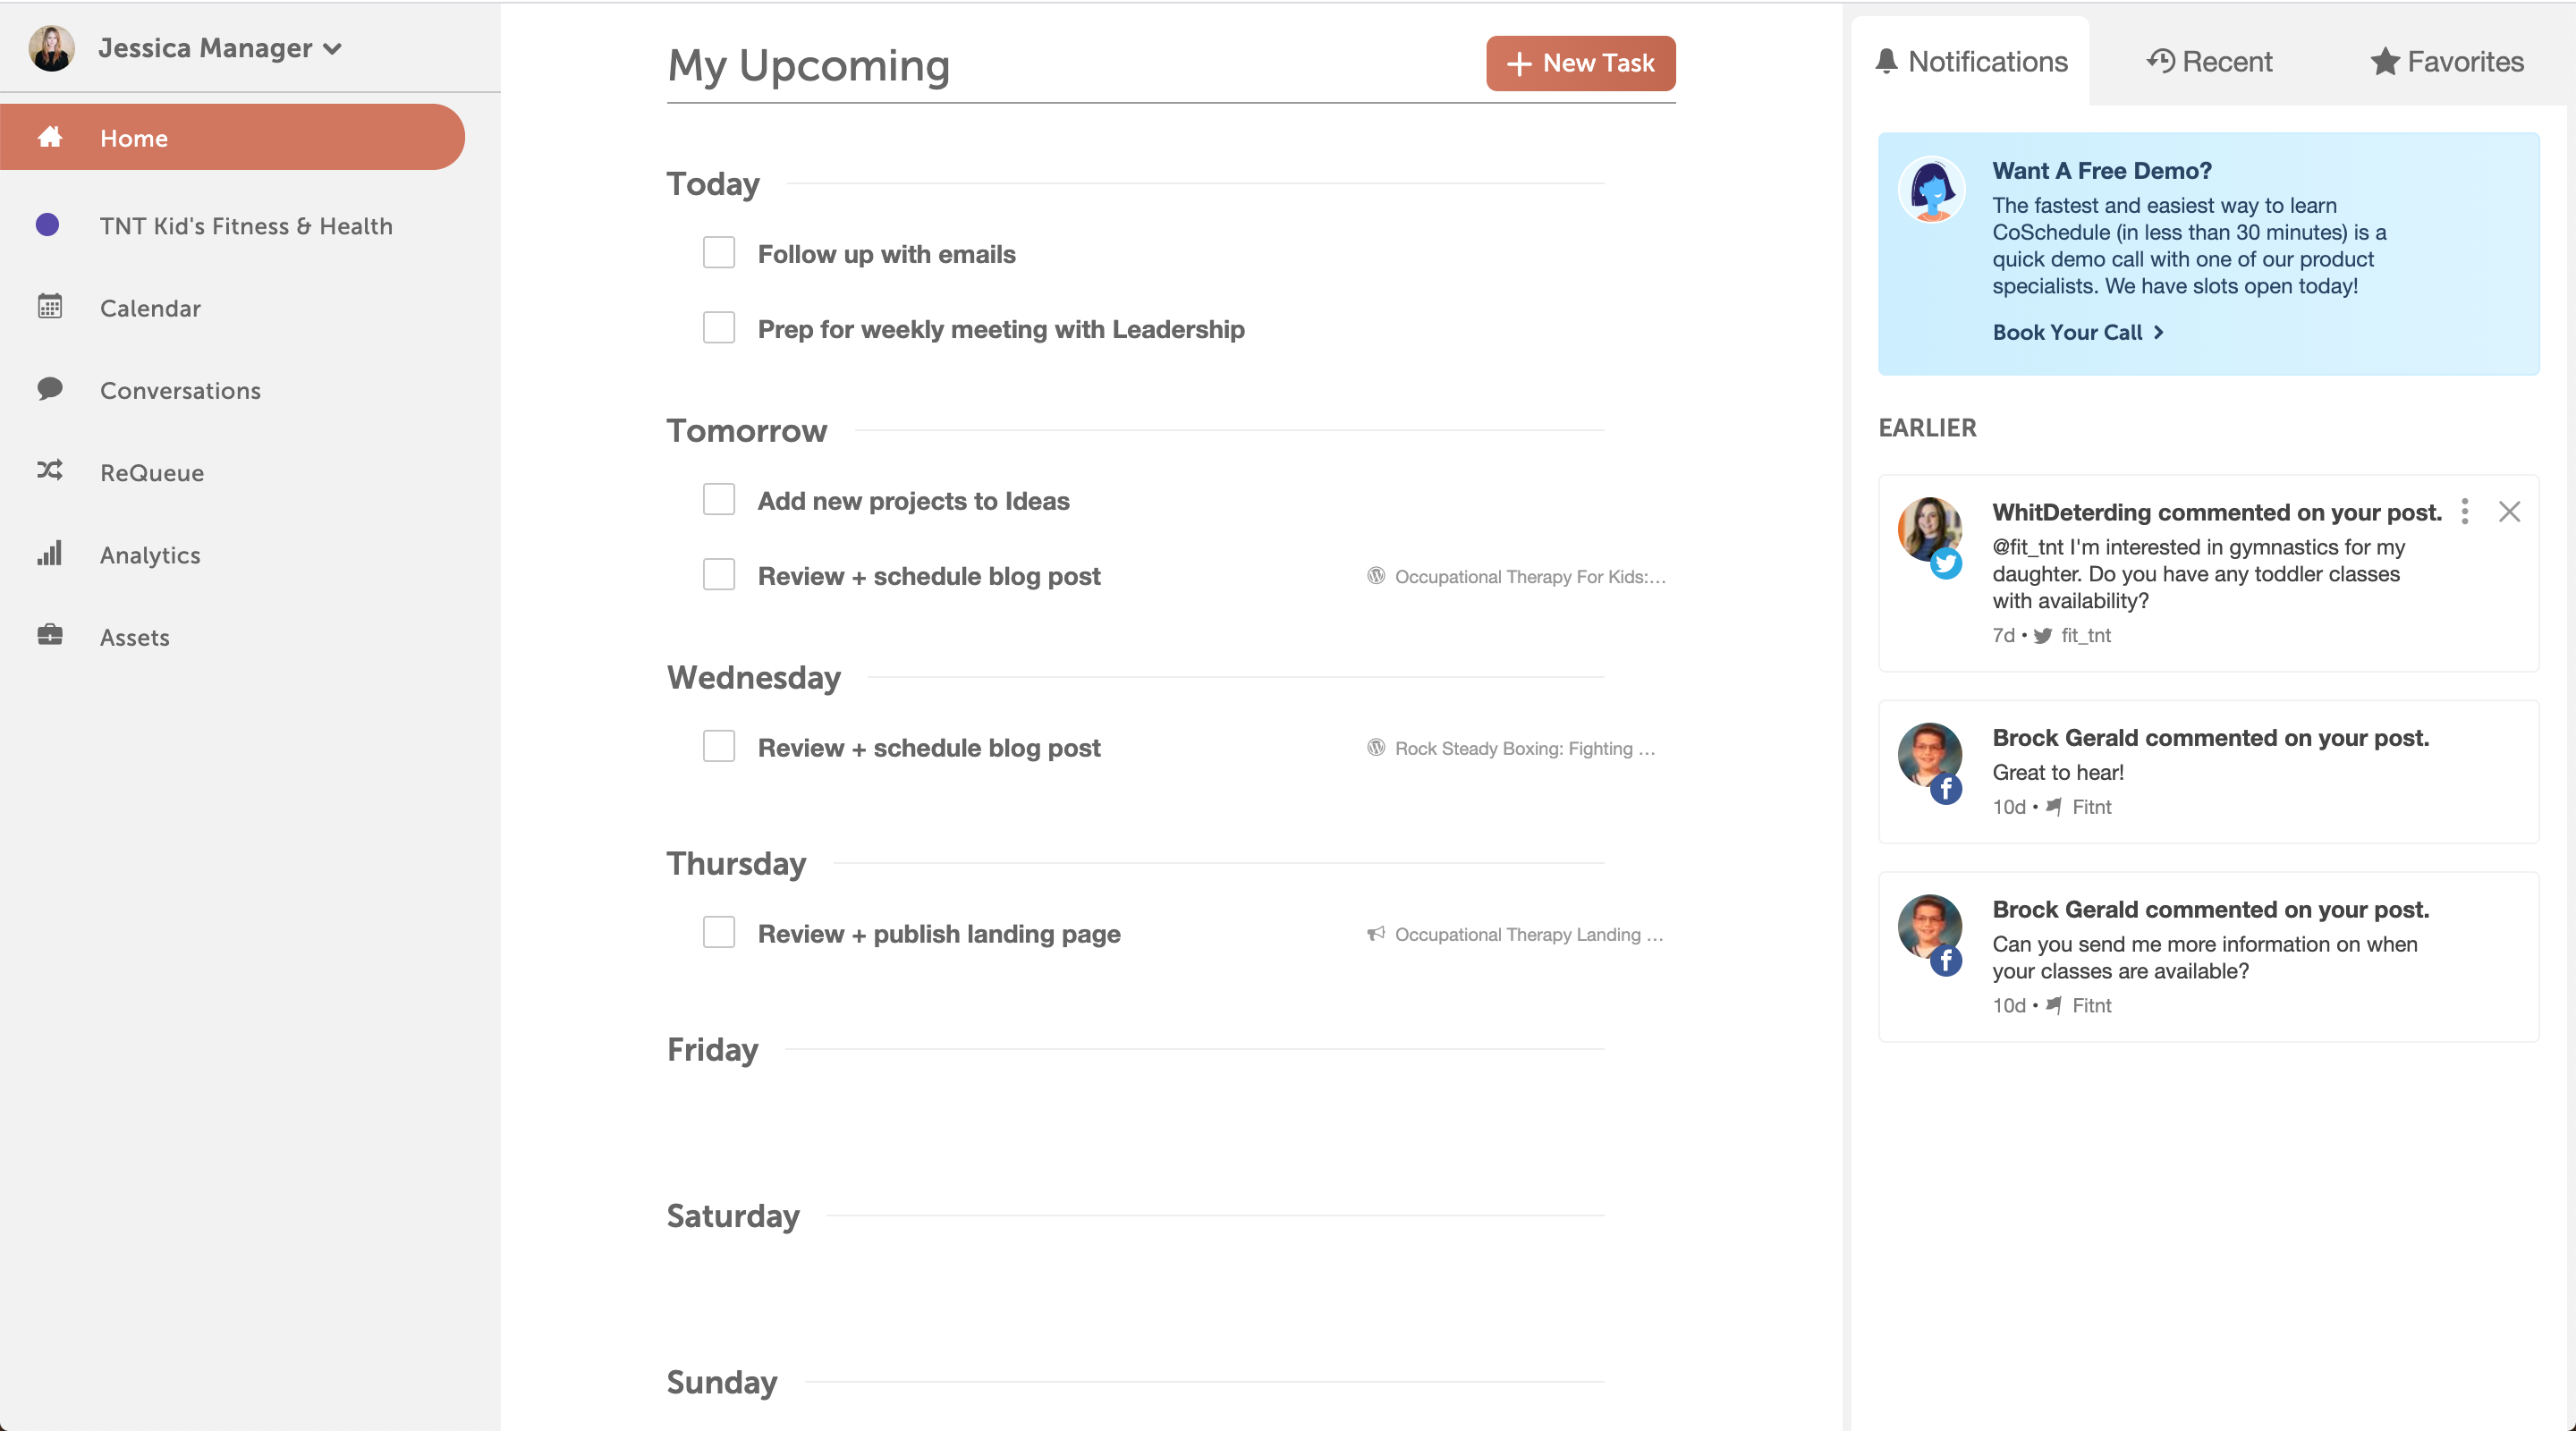 From Home, every CoSchedule user can review their unique priorities, projects, and tasks.  Manage, view, and reply to notifications. Focus on the work that matters most to you.